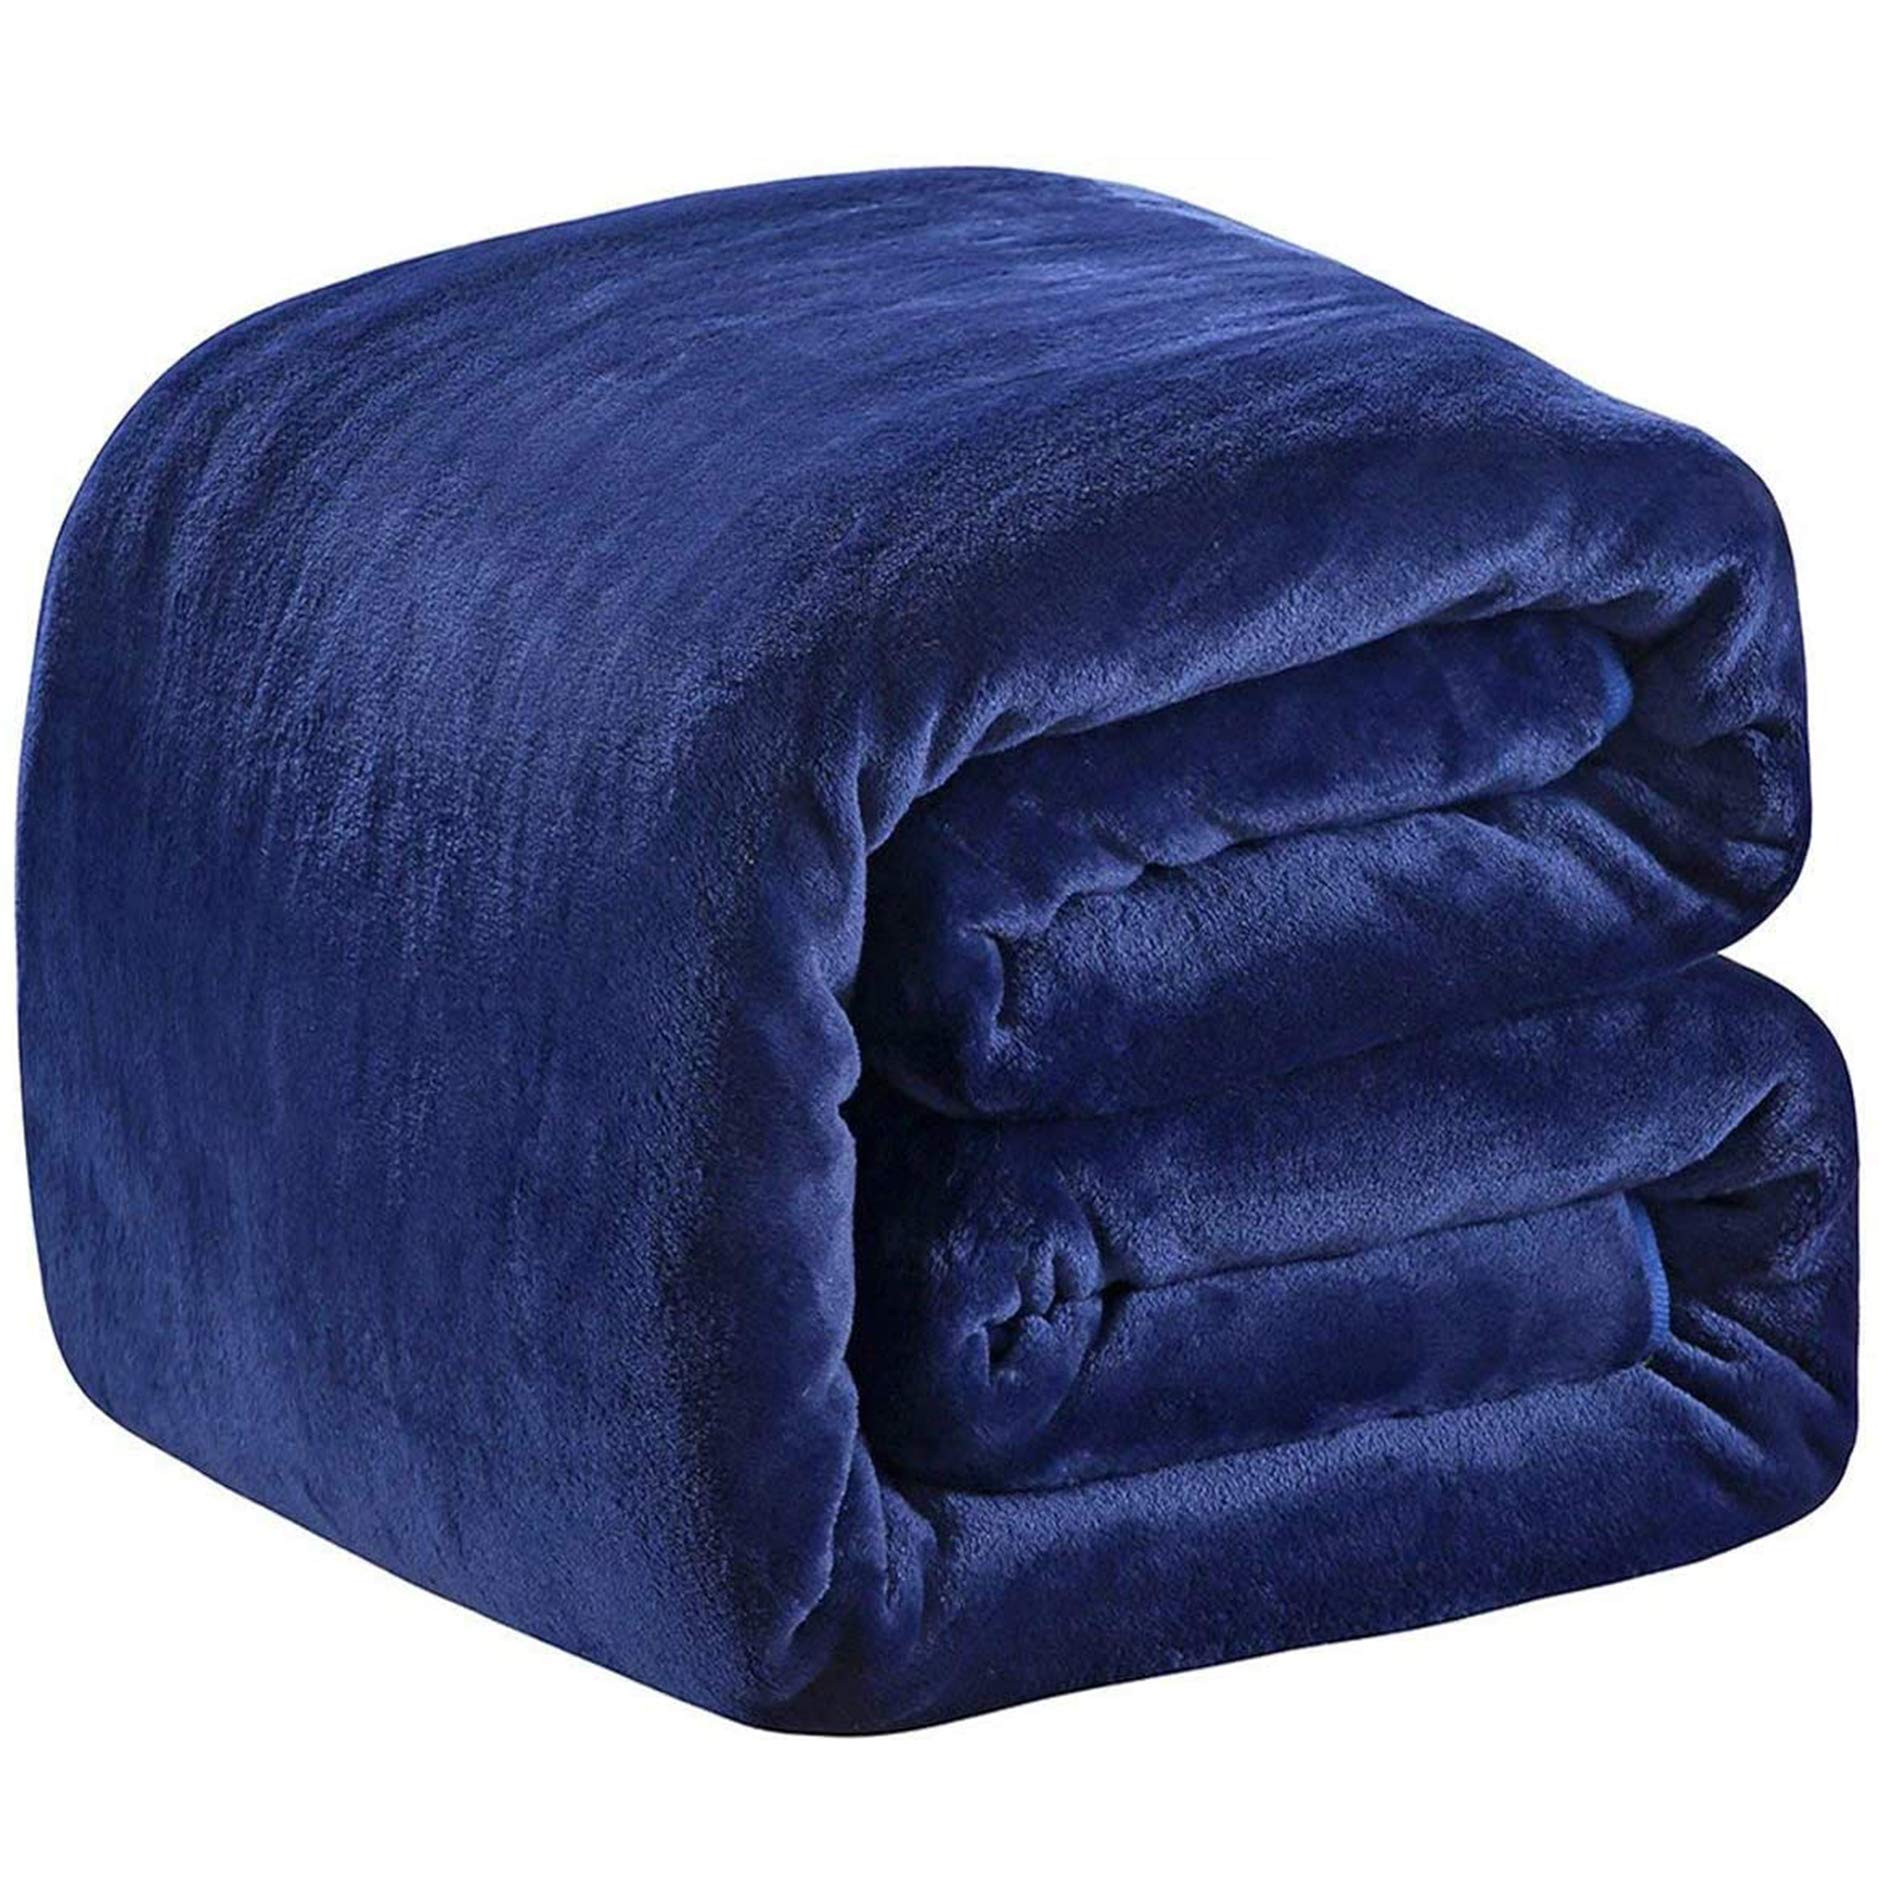 Fleece Blanket Twin Size 350GSM Lightweight Throw for The Bed Extra Soft Brush Fabric Super Warm Sofa Blanket 66 x 90(Royal Blue Twin)